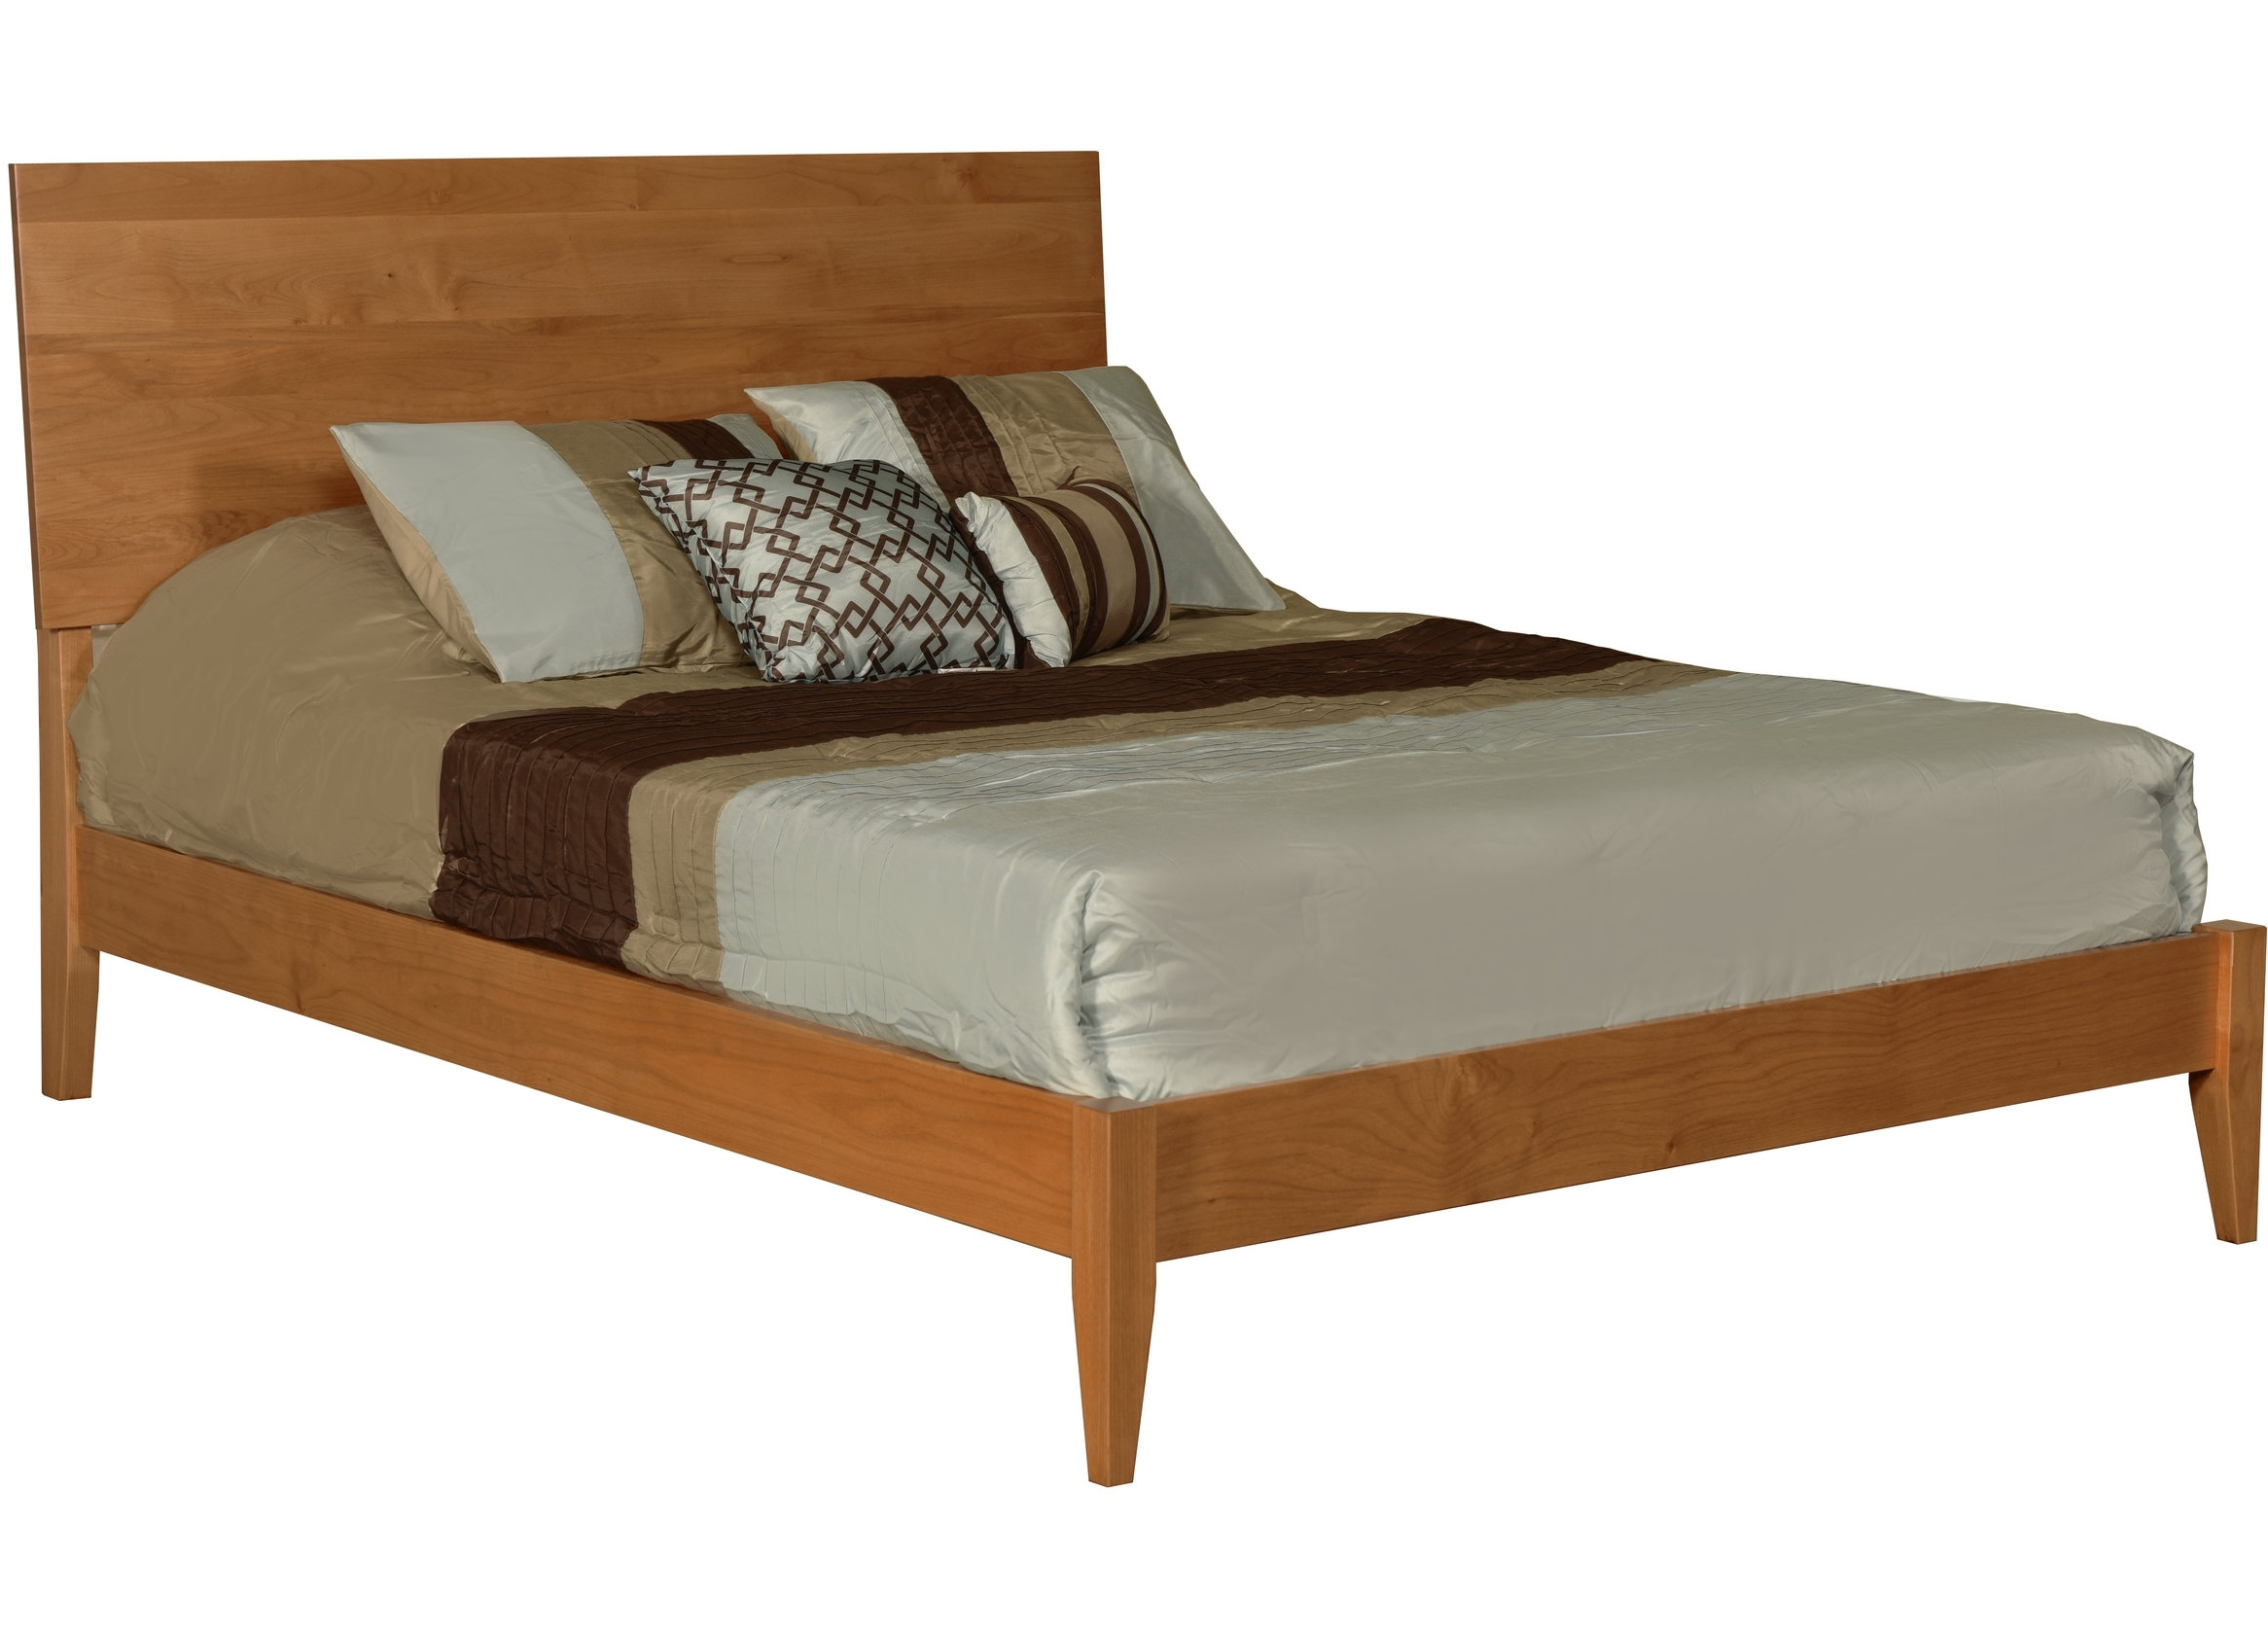 Alder Beds - Archbold - 2 West platform bed - Finished.jpg